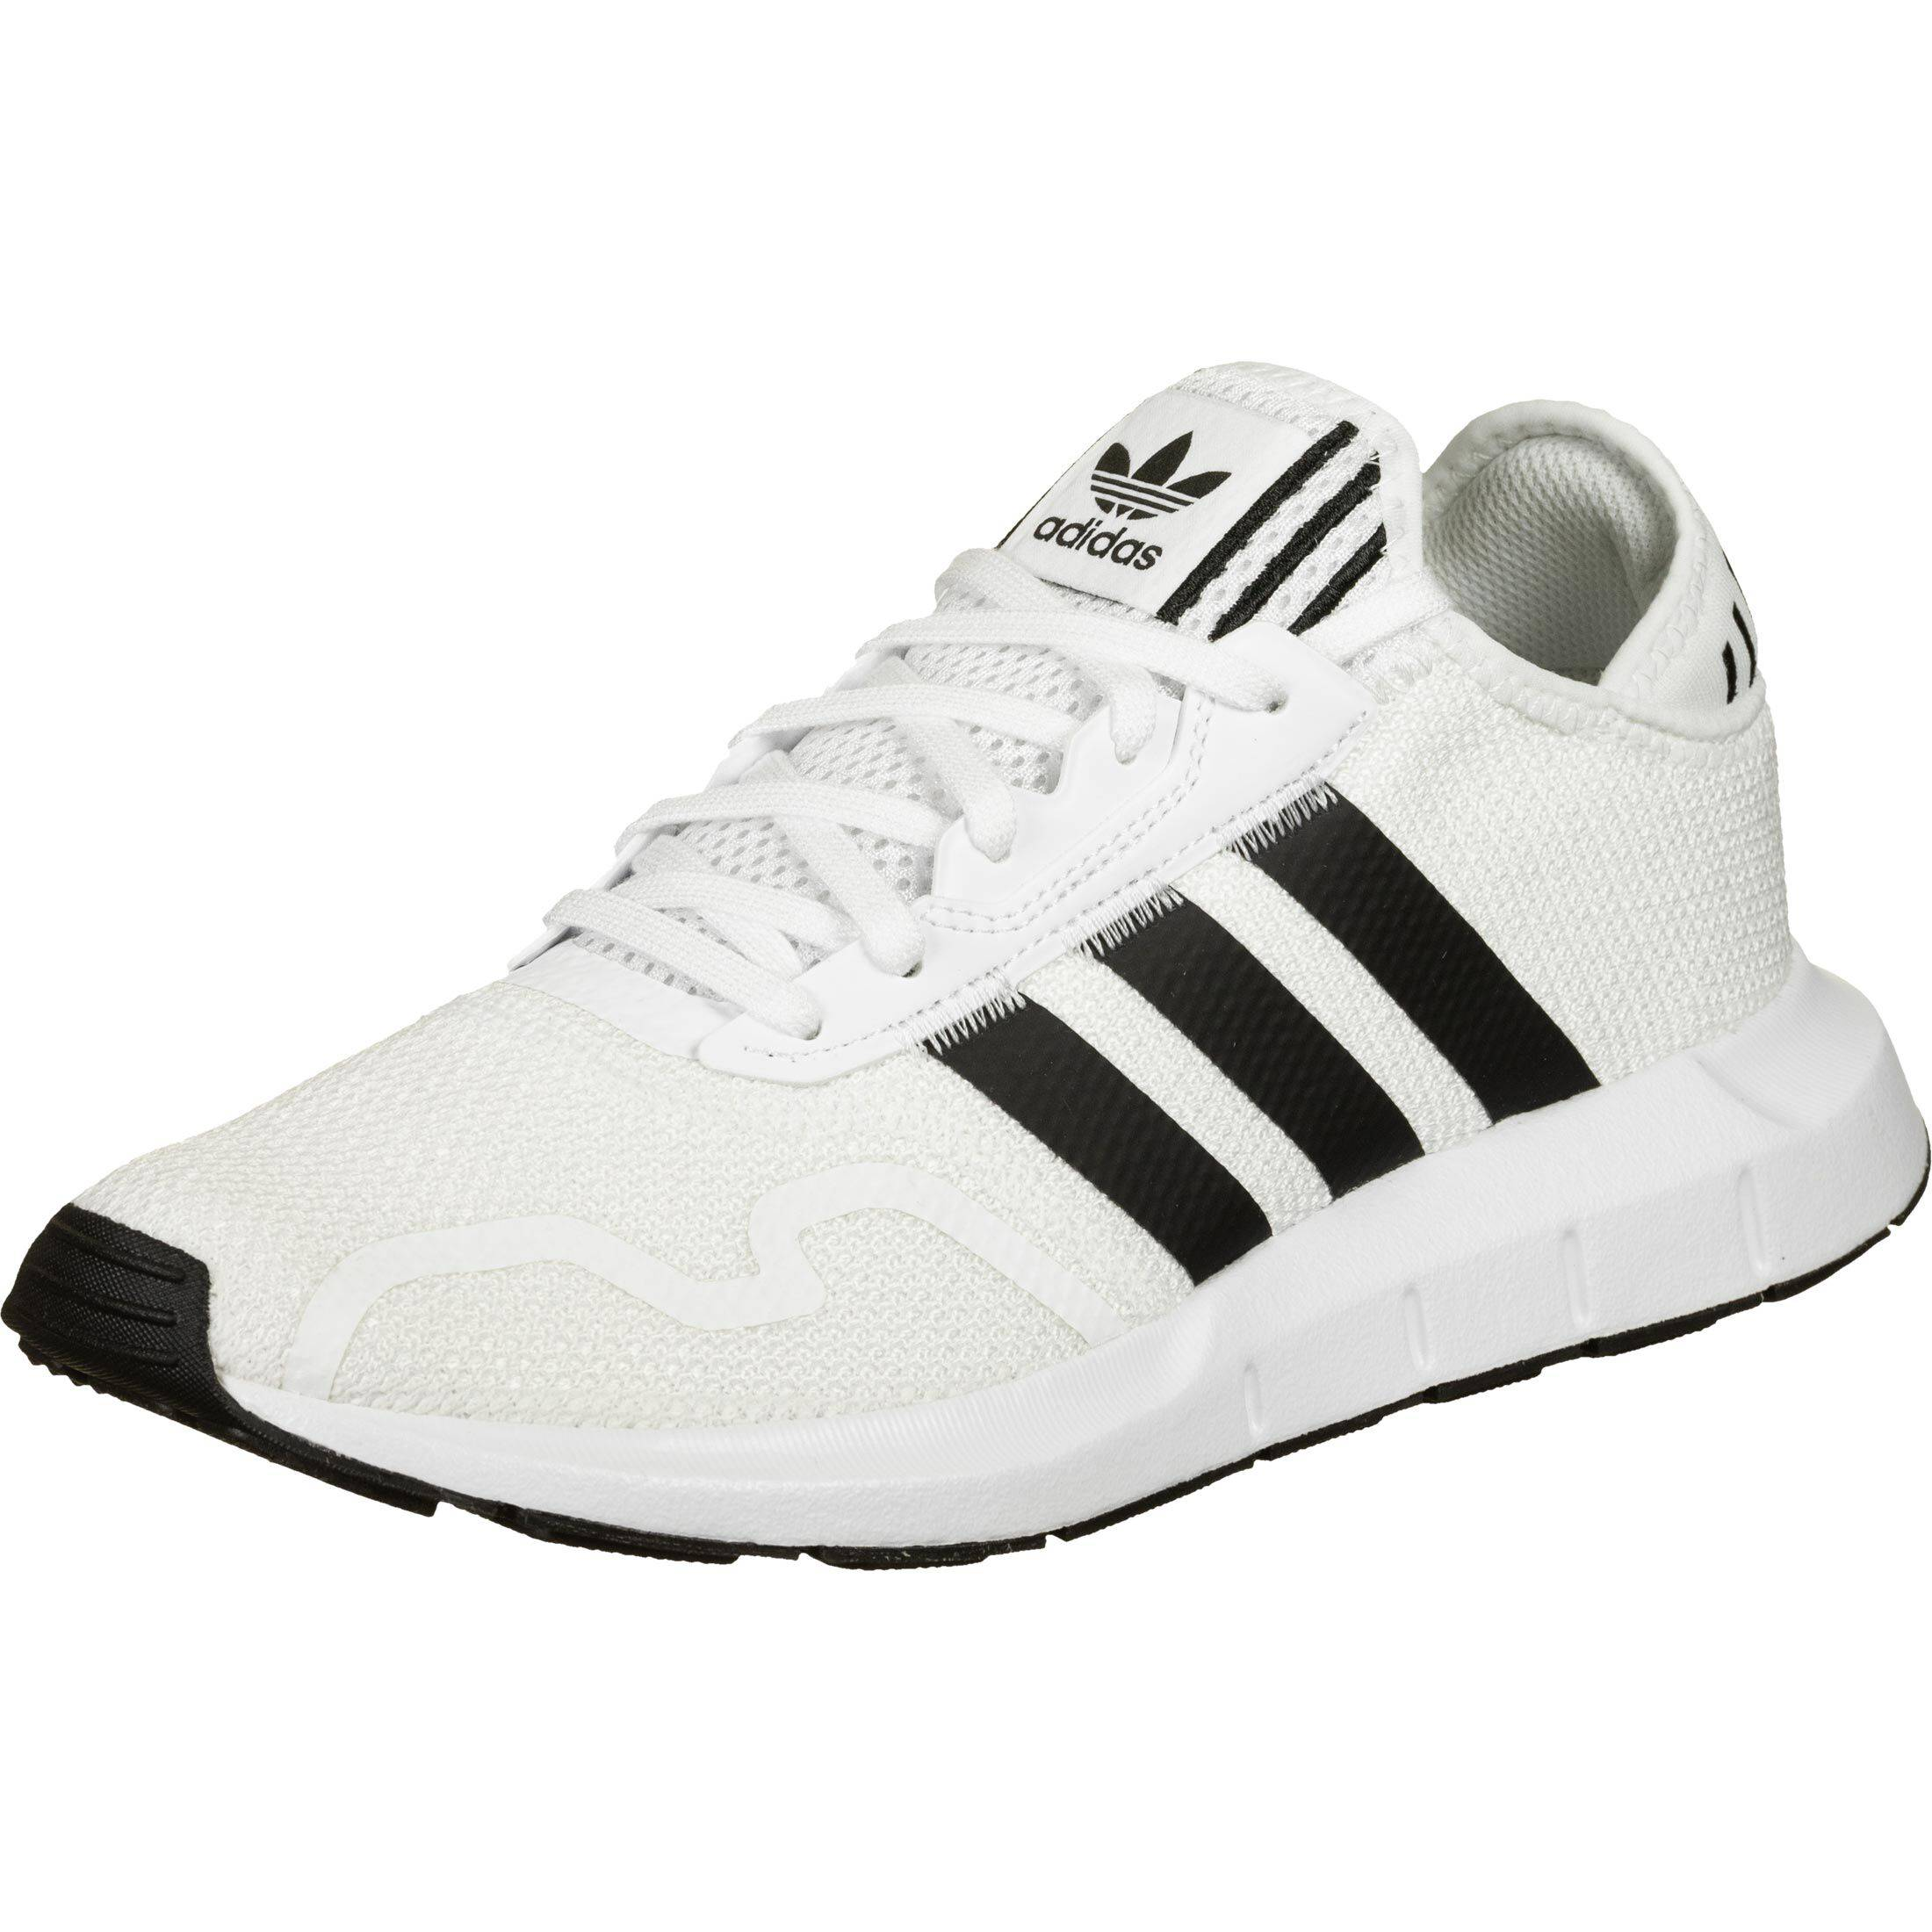 adidas Swift Run X, 36 EU, homme, blanc